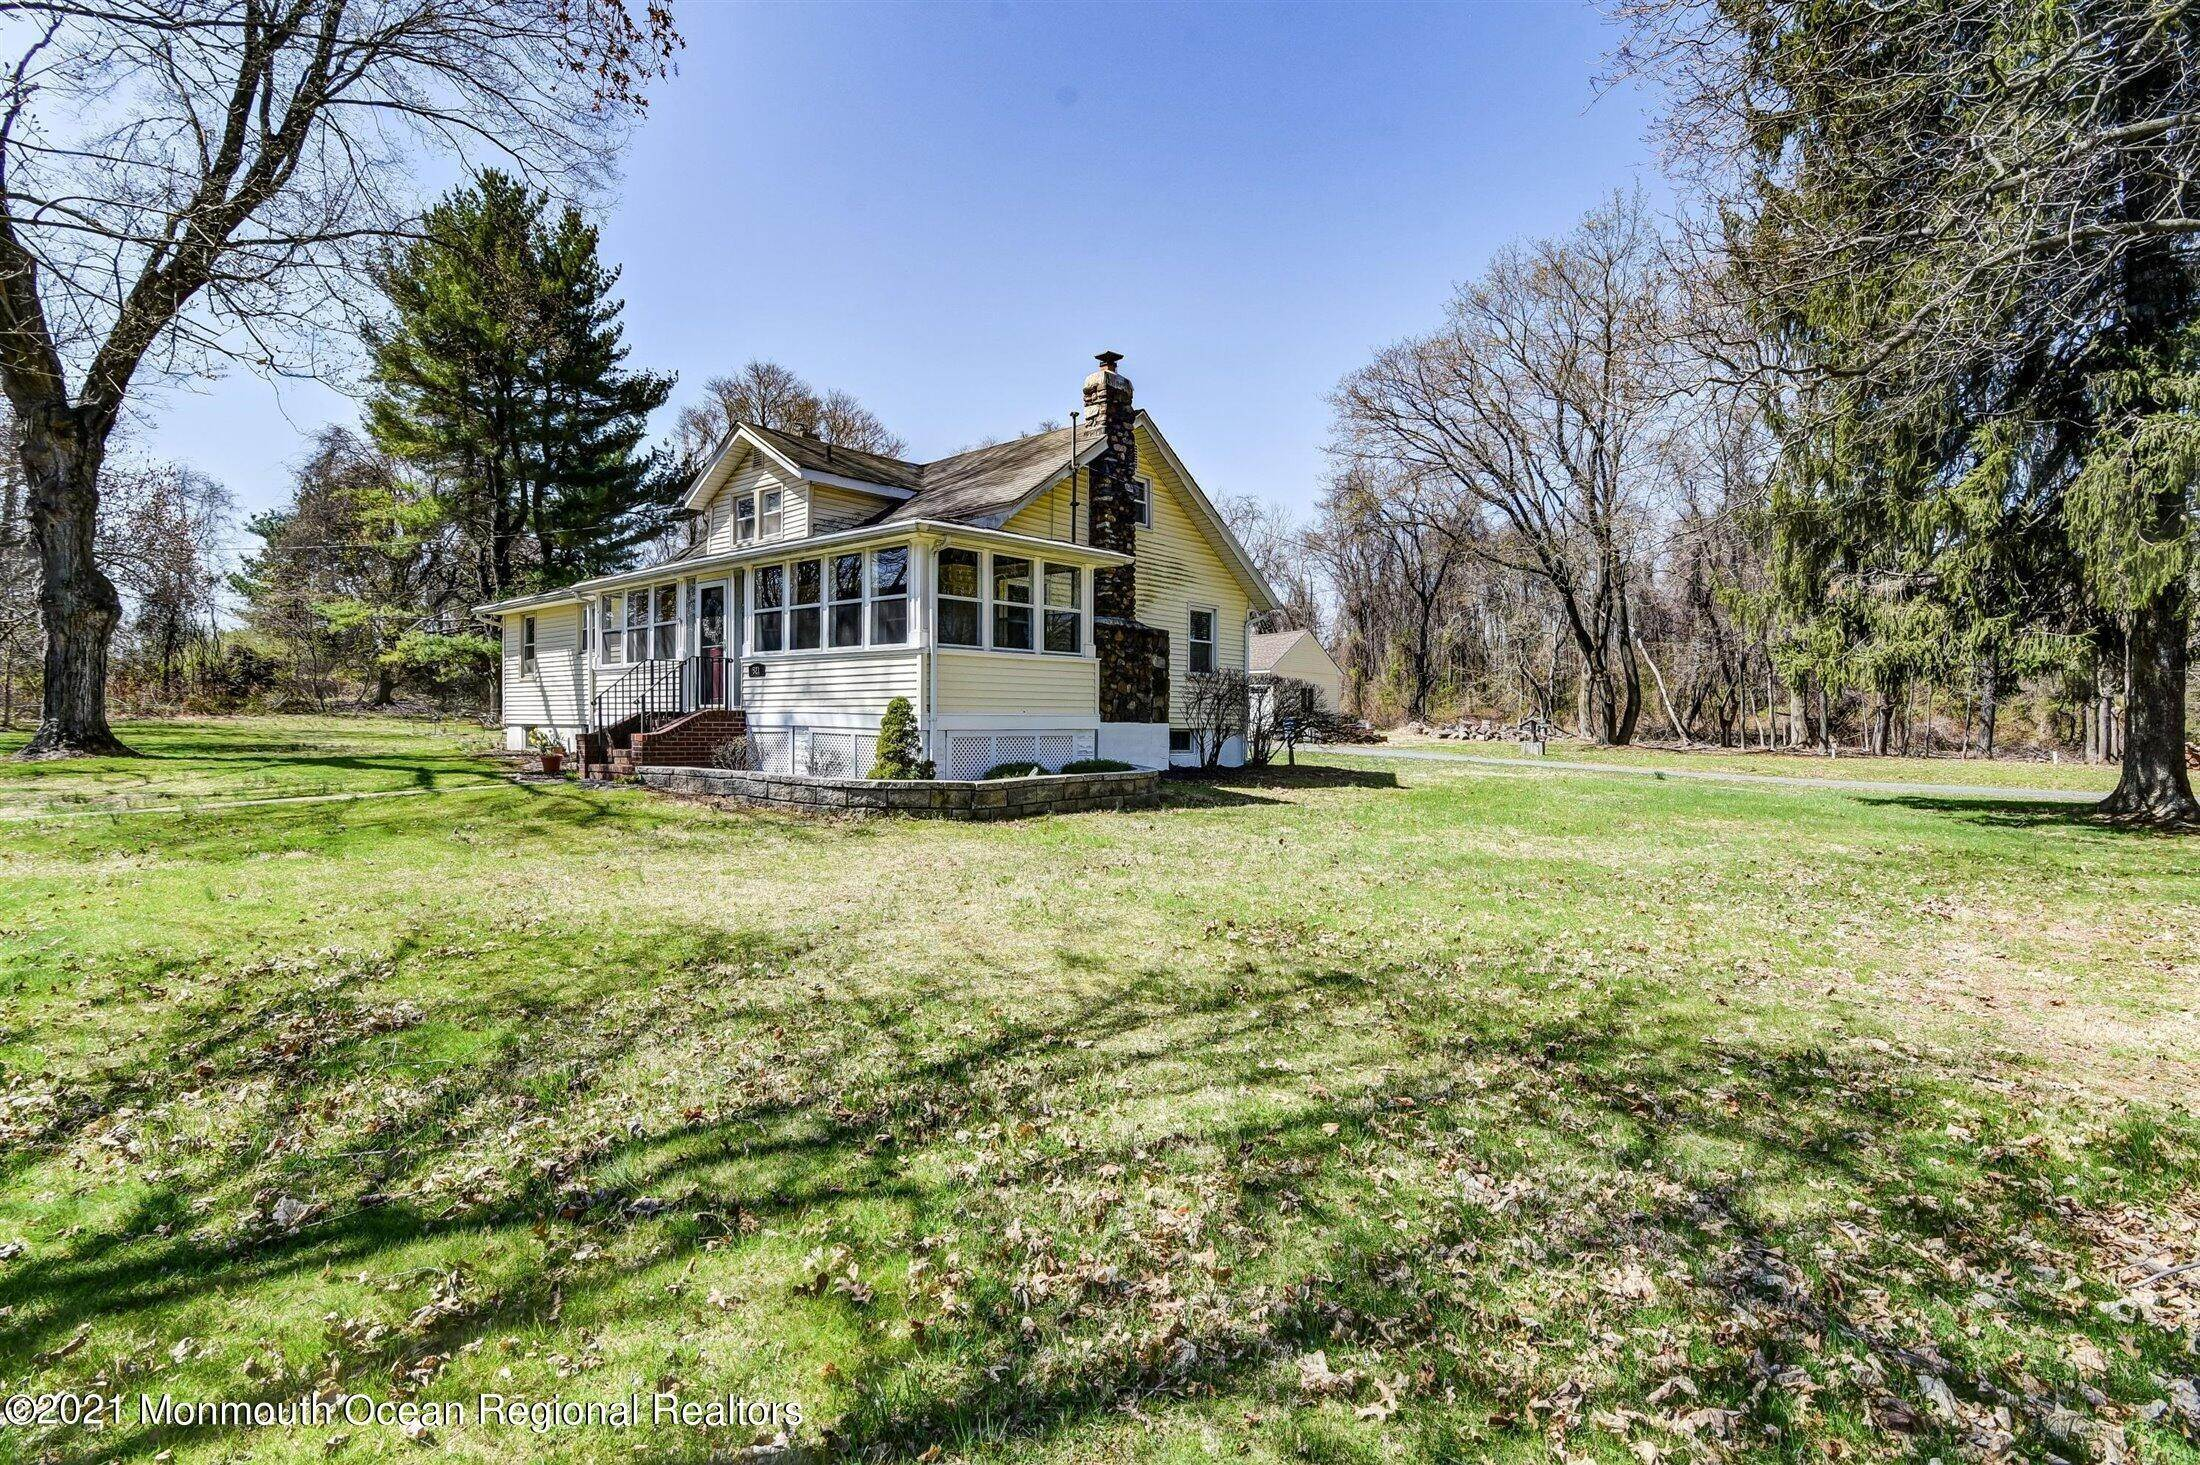 Single Family Homes for Sale at 521 County Road 523 Whitehouse Station, New Jersey 08889 United States